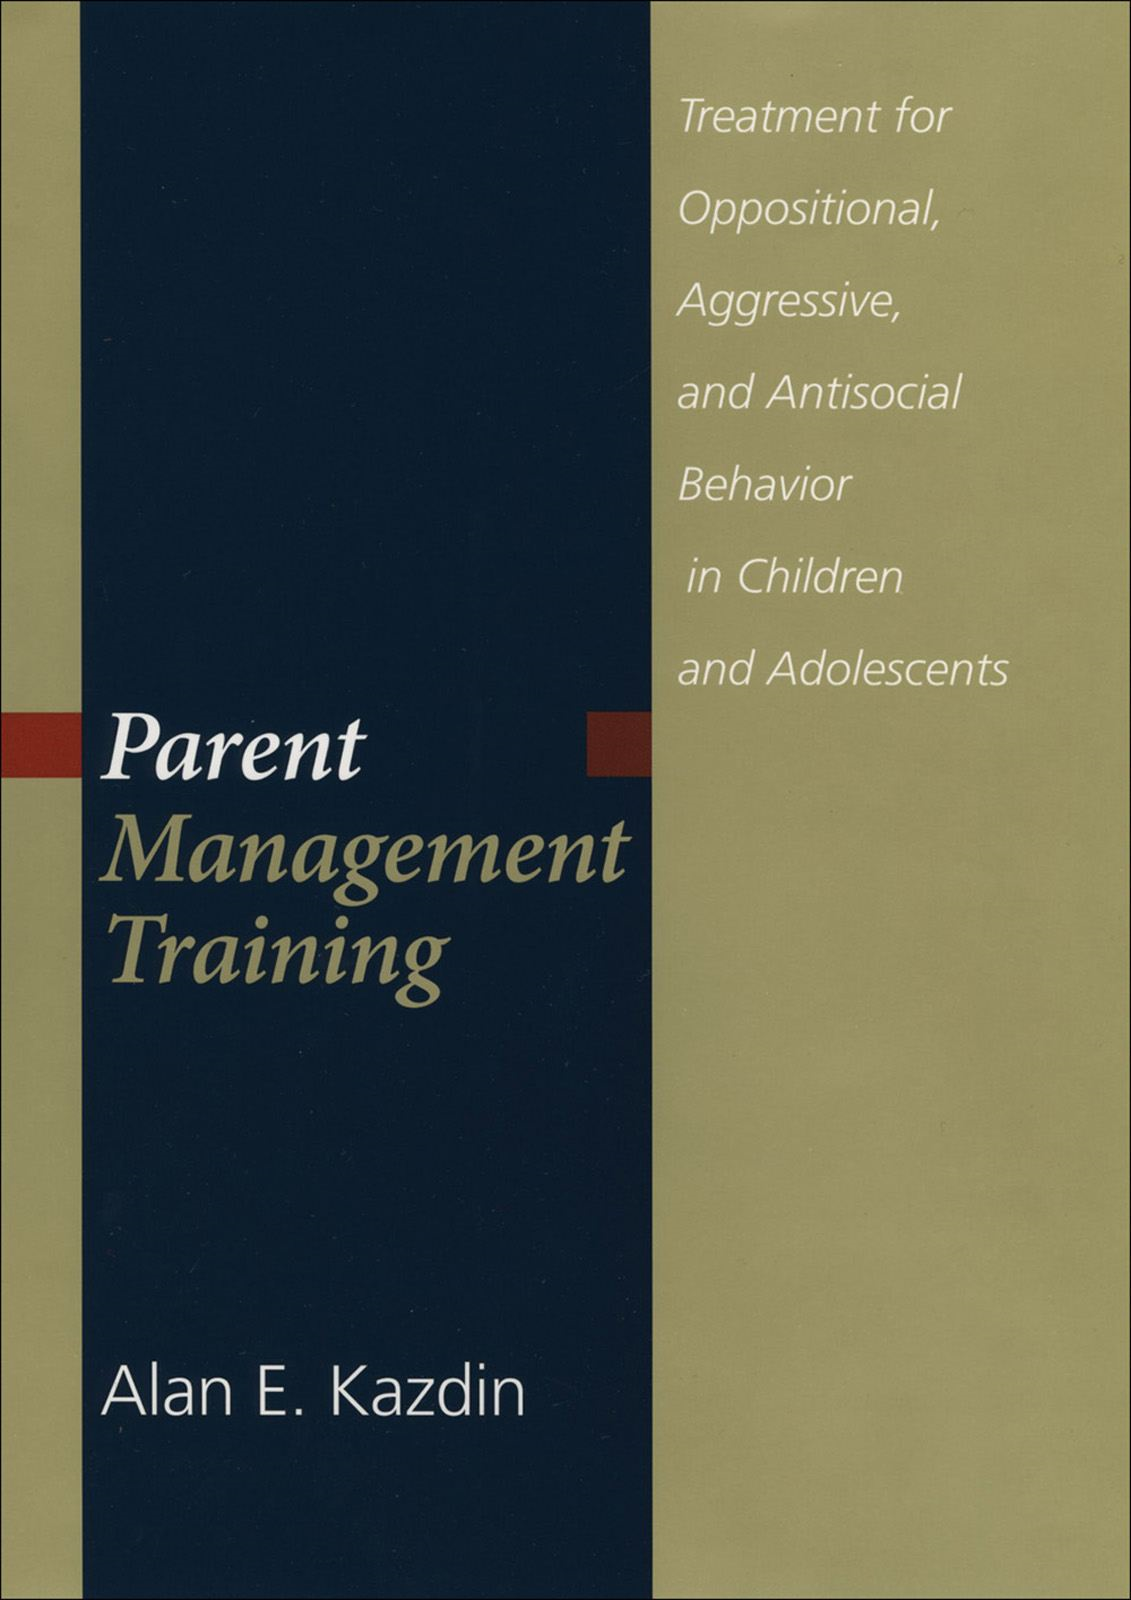 Parent Management Training : Treatment for Oppositional Aggressive and Antisocial Behavior in Children and Adolescents